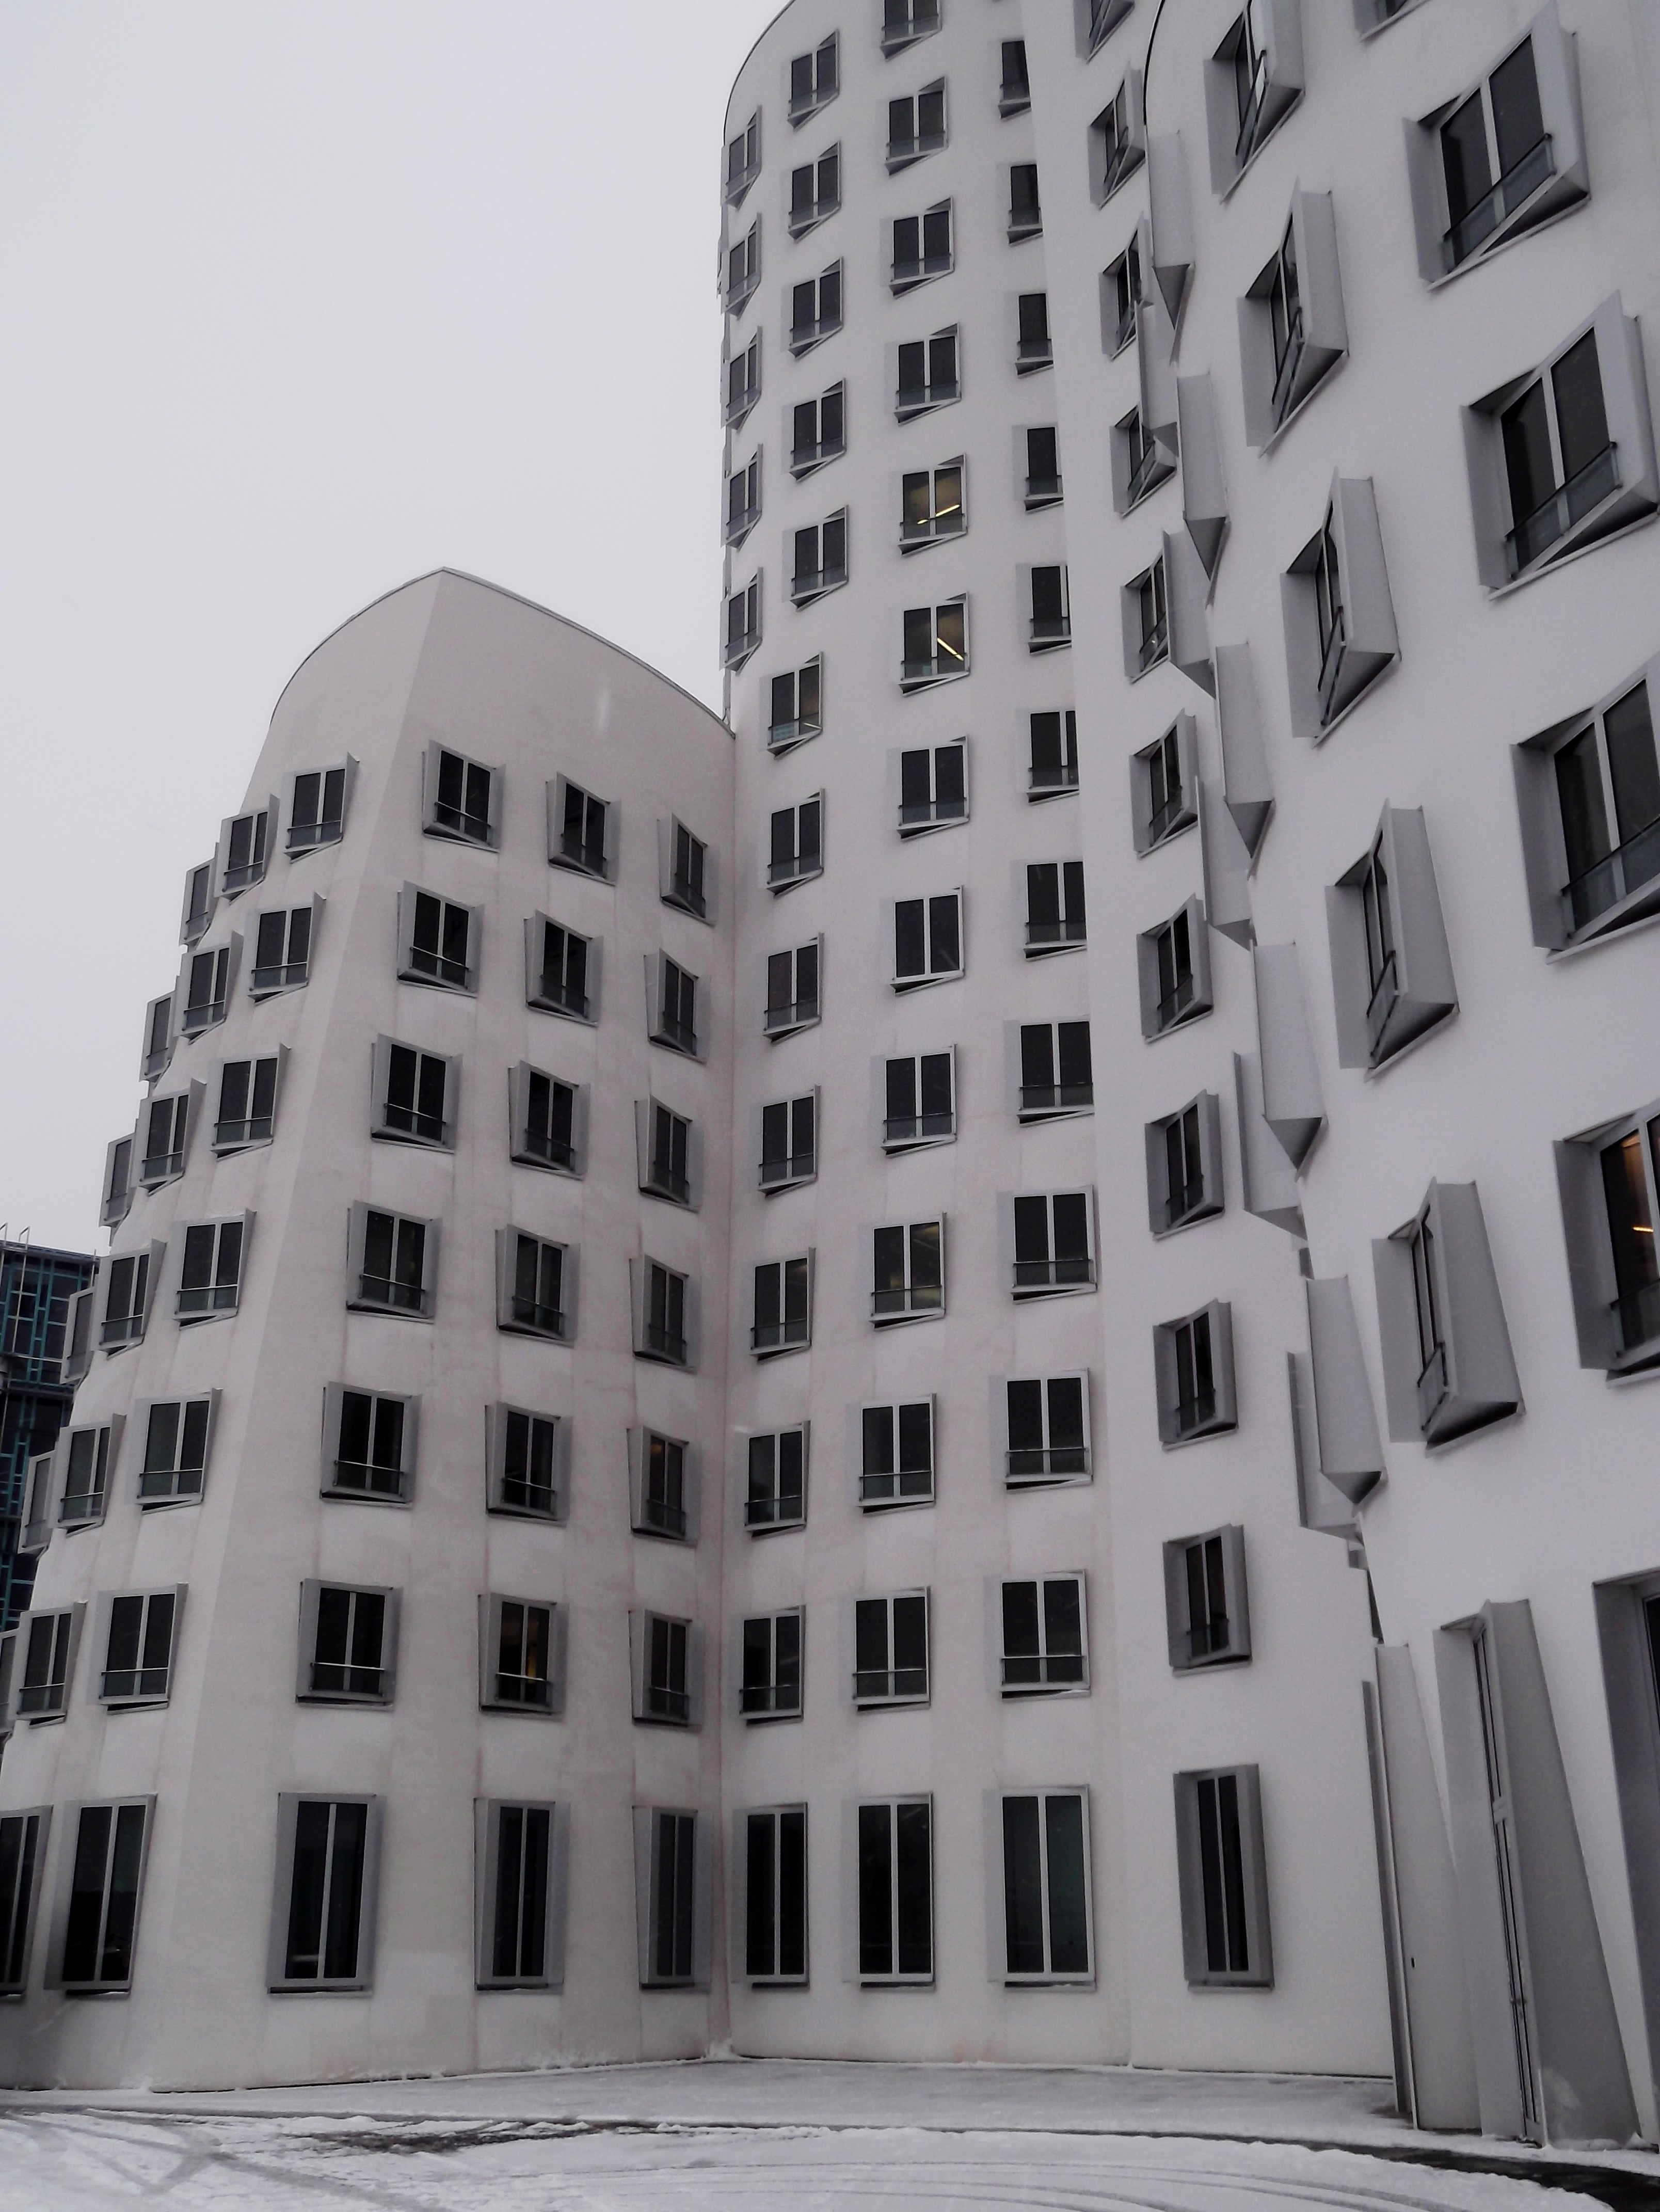 frank o gehry architecture in dusseldorf germany frank o gehry architecture in dusseldorf germany